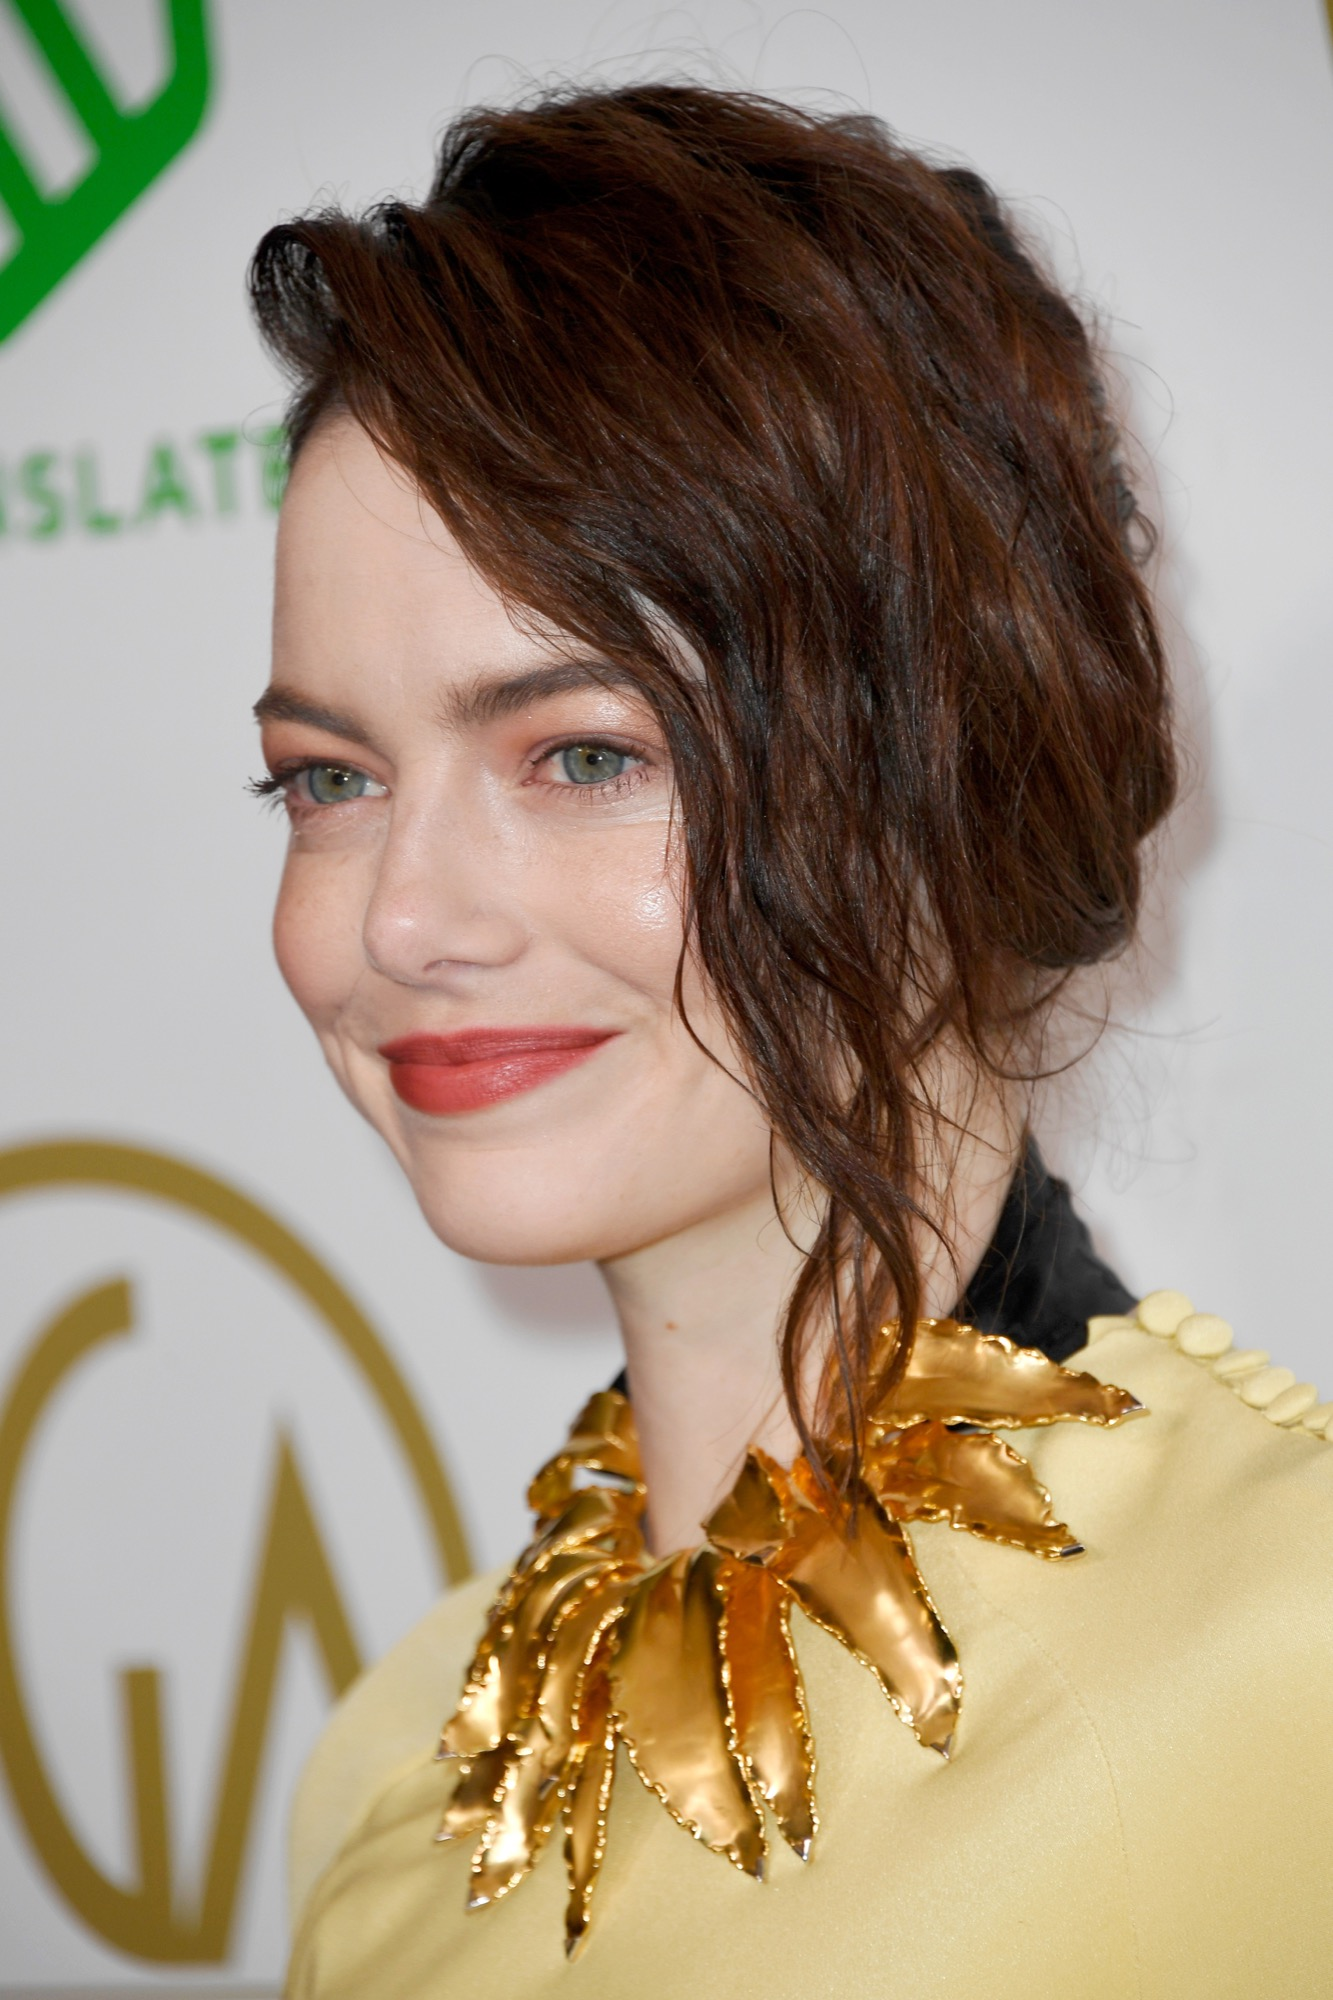 emma stone dark hair january 19 2018